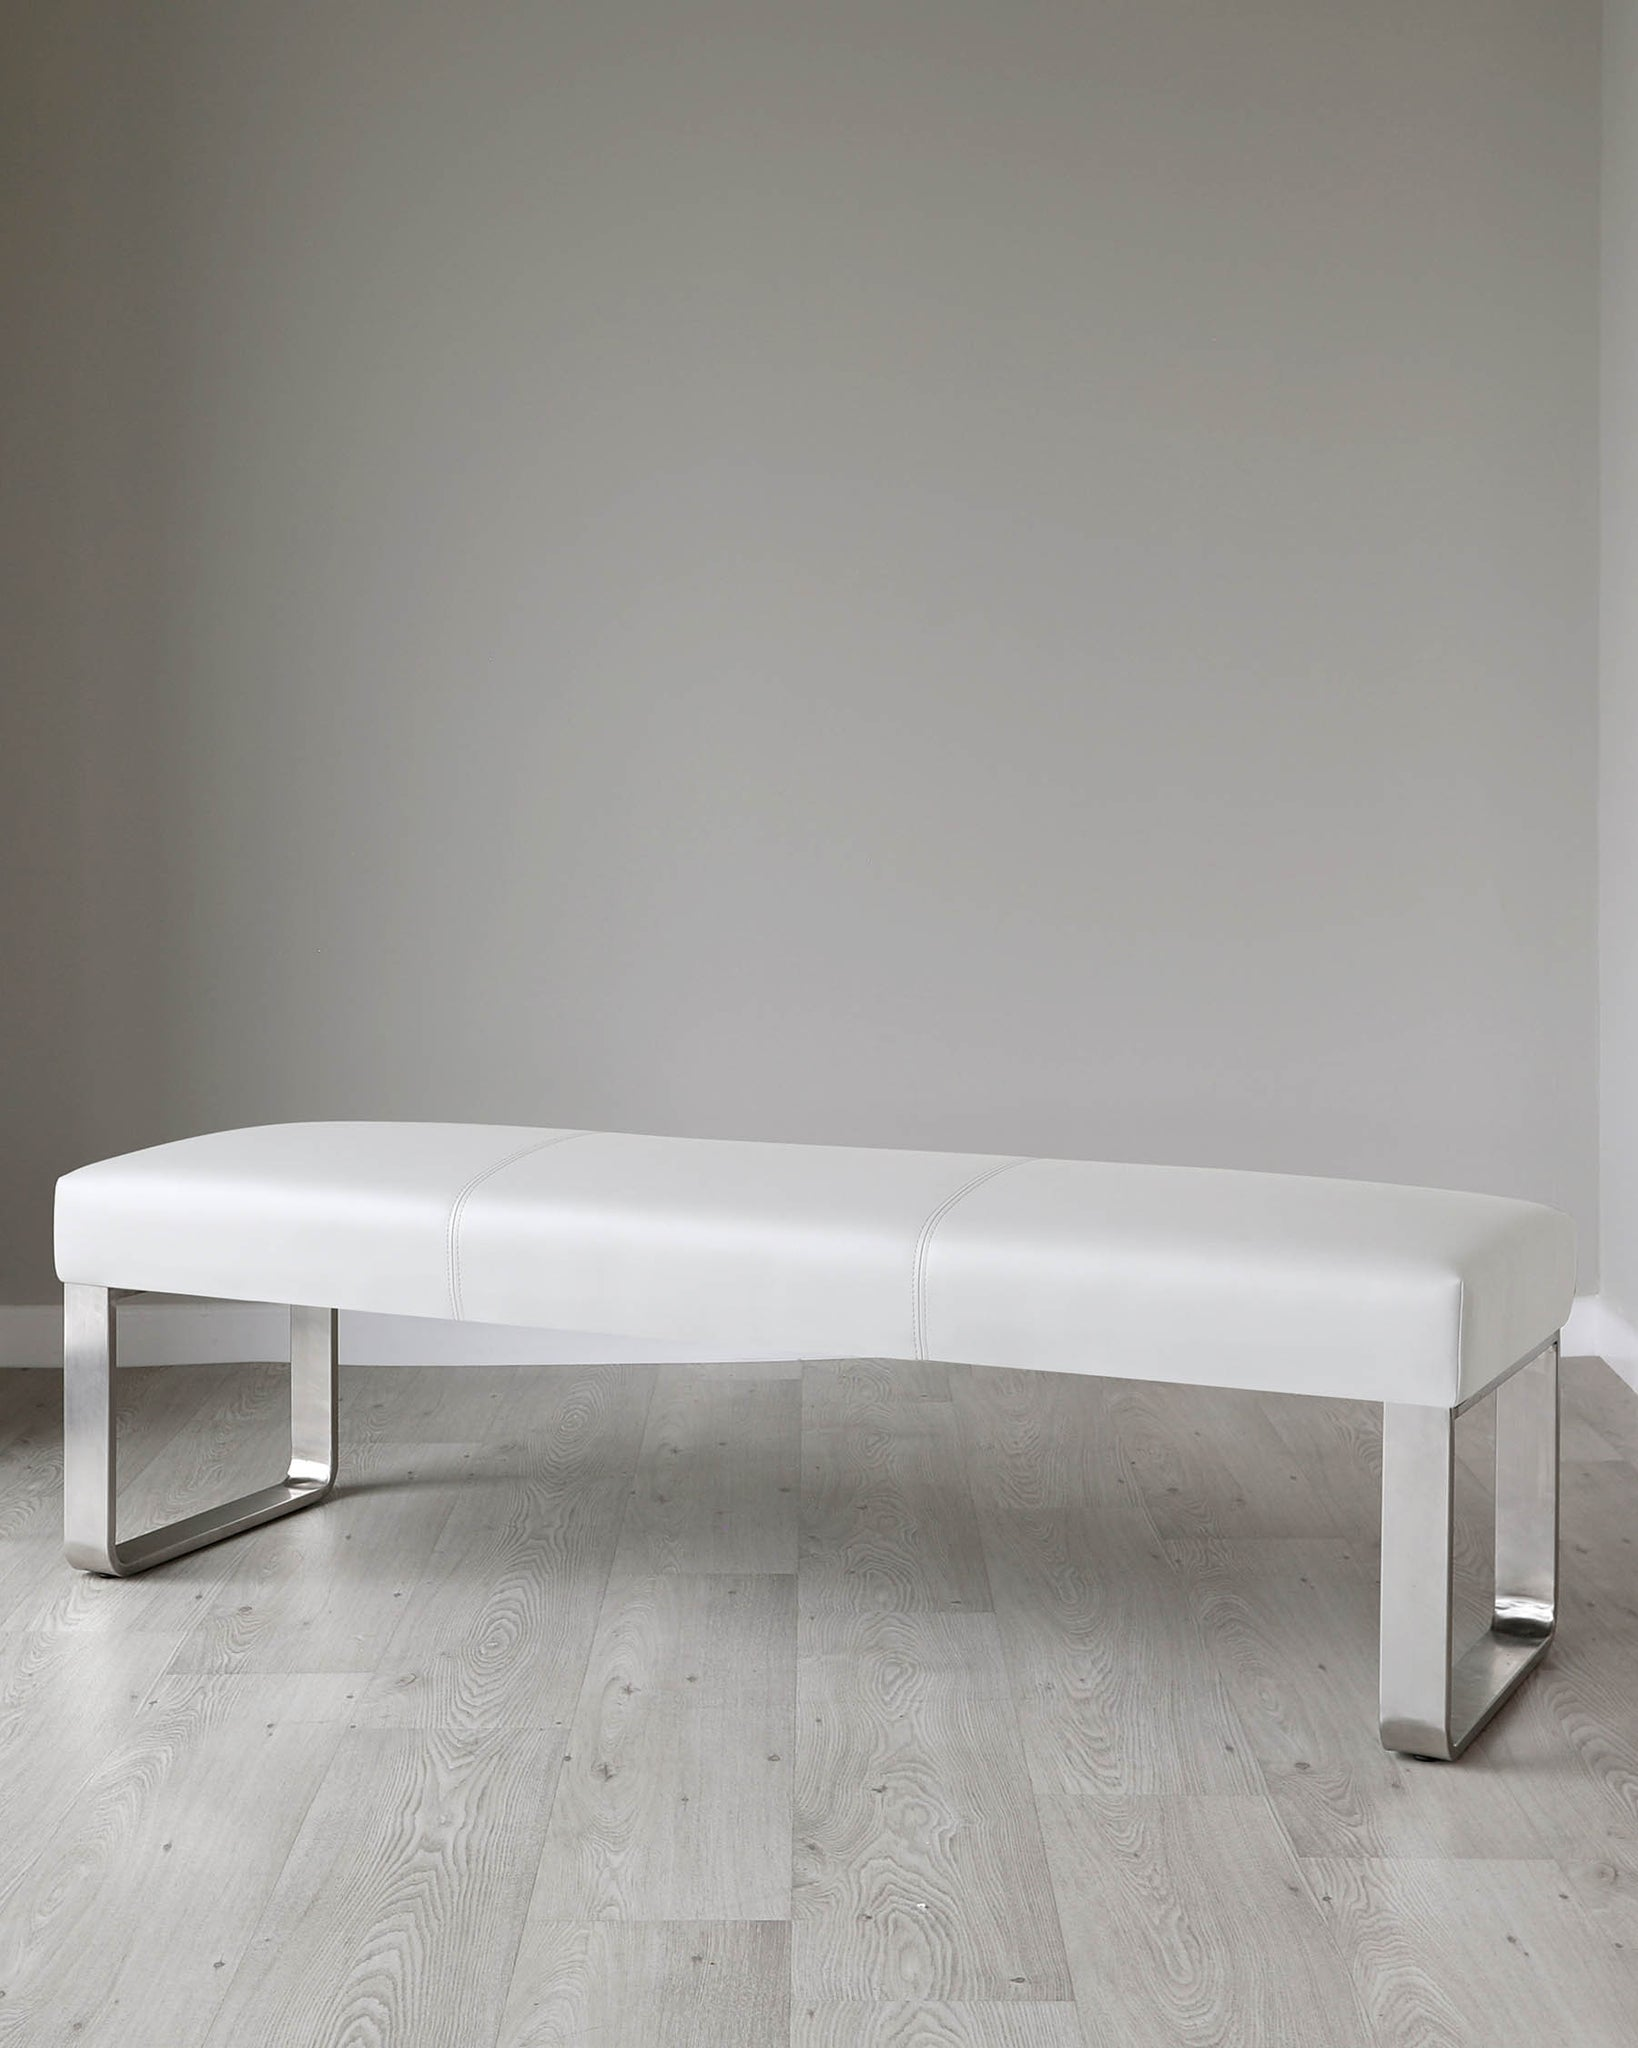 Loop 3 Seater Light Grey Faux Leather & Stainless Steel Bench Without Backrest